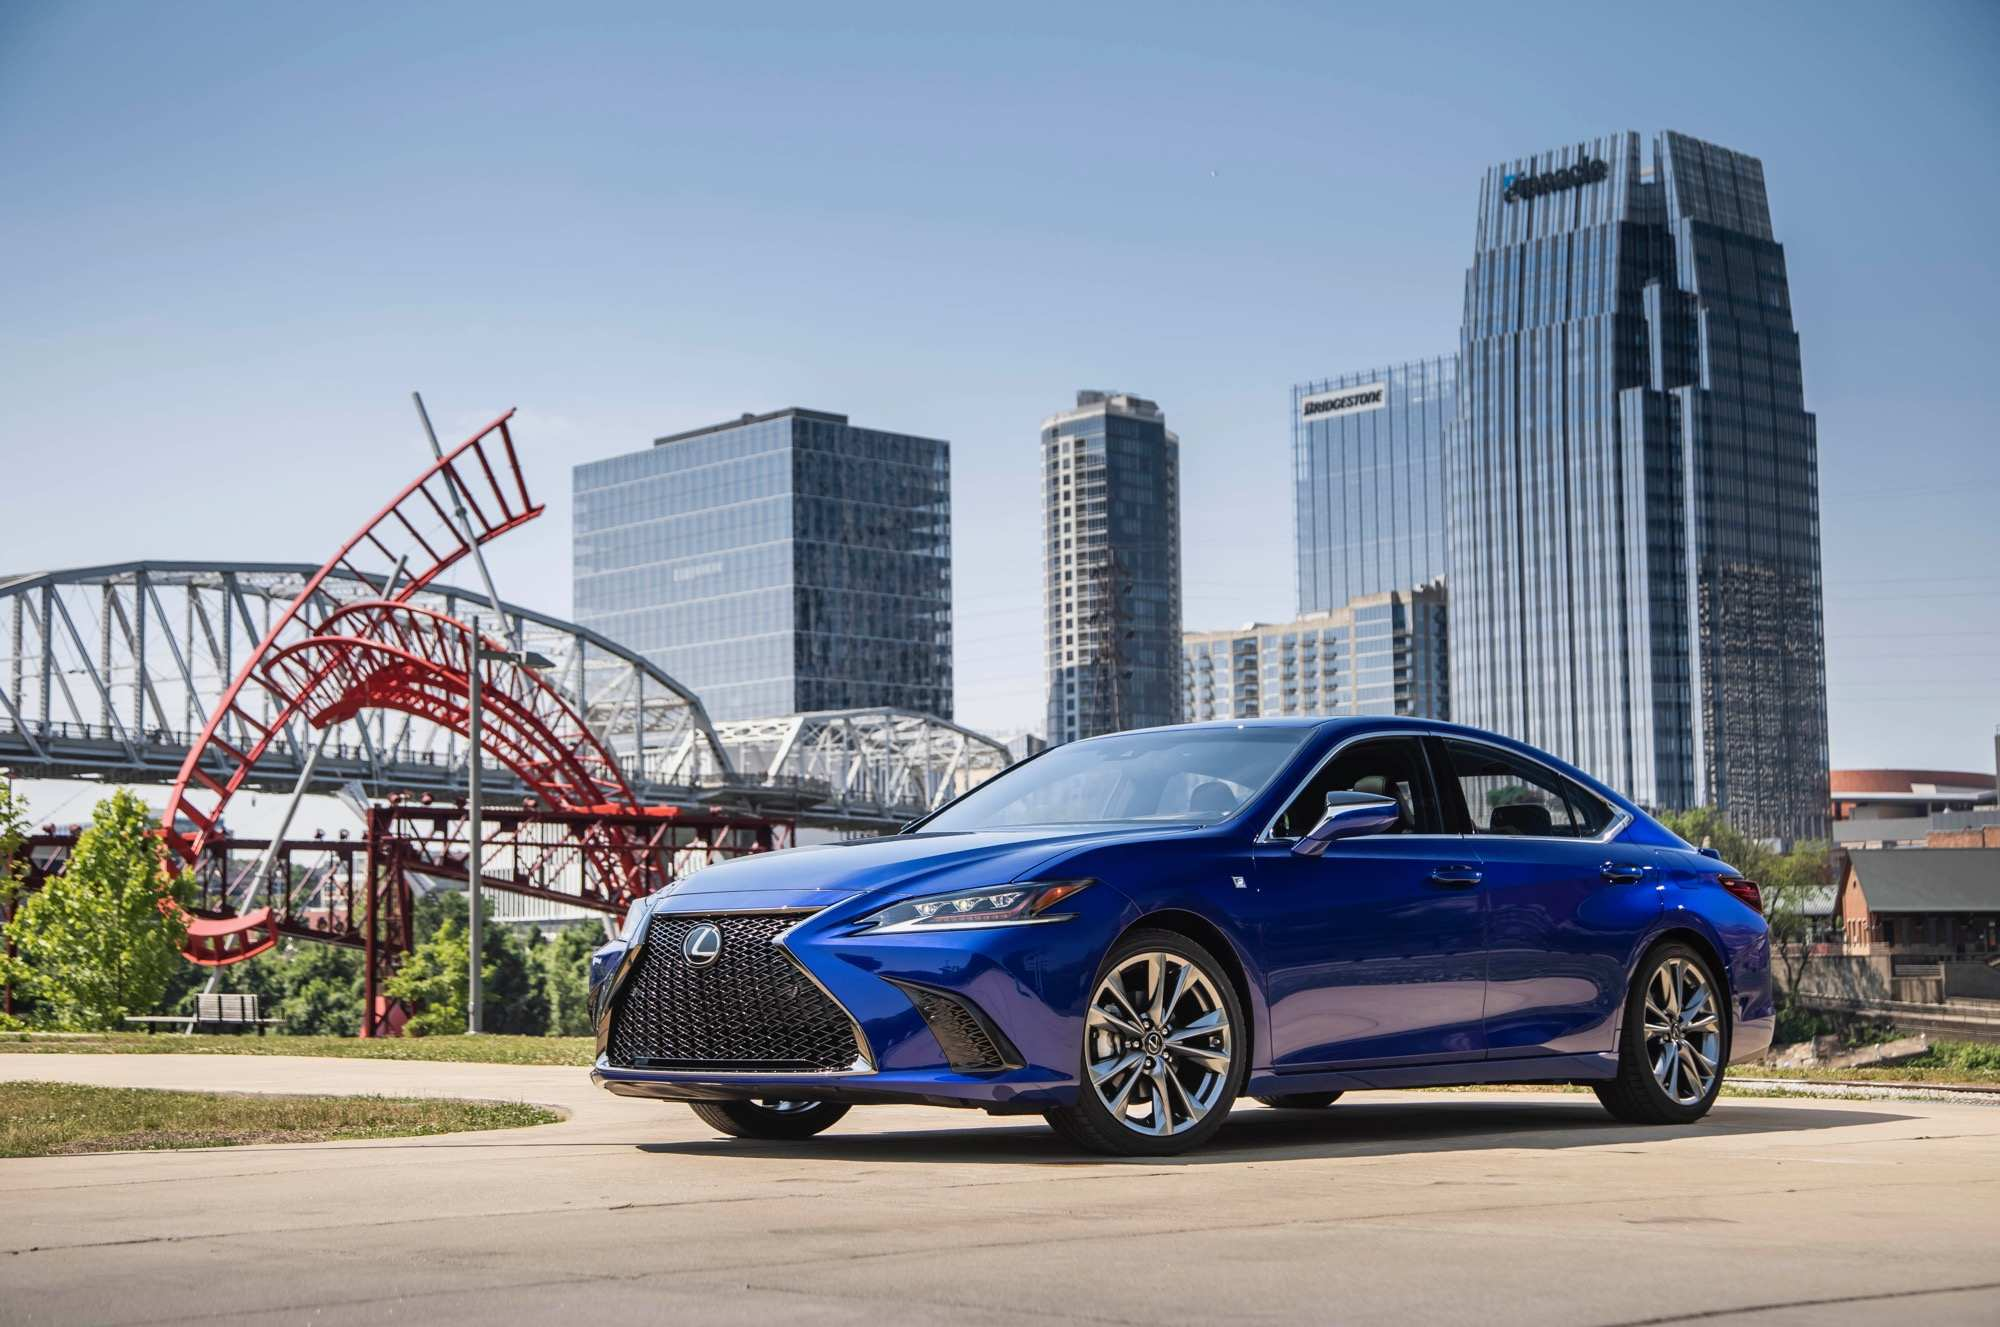 82 Gallery of 2019 Lexus Es 350 F Sport First Drive for 2019 Lexus Es 350 F Sport